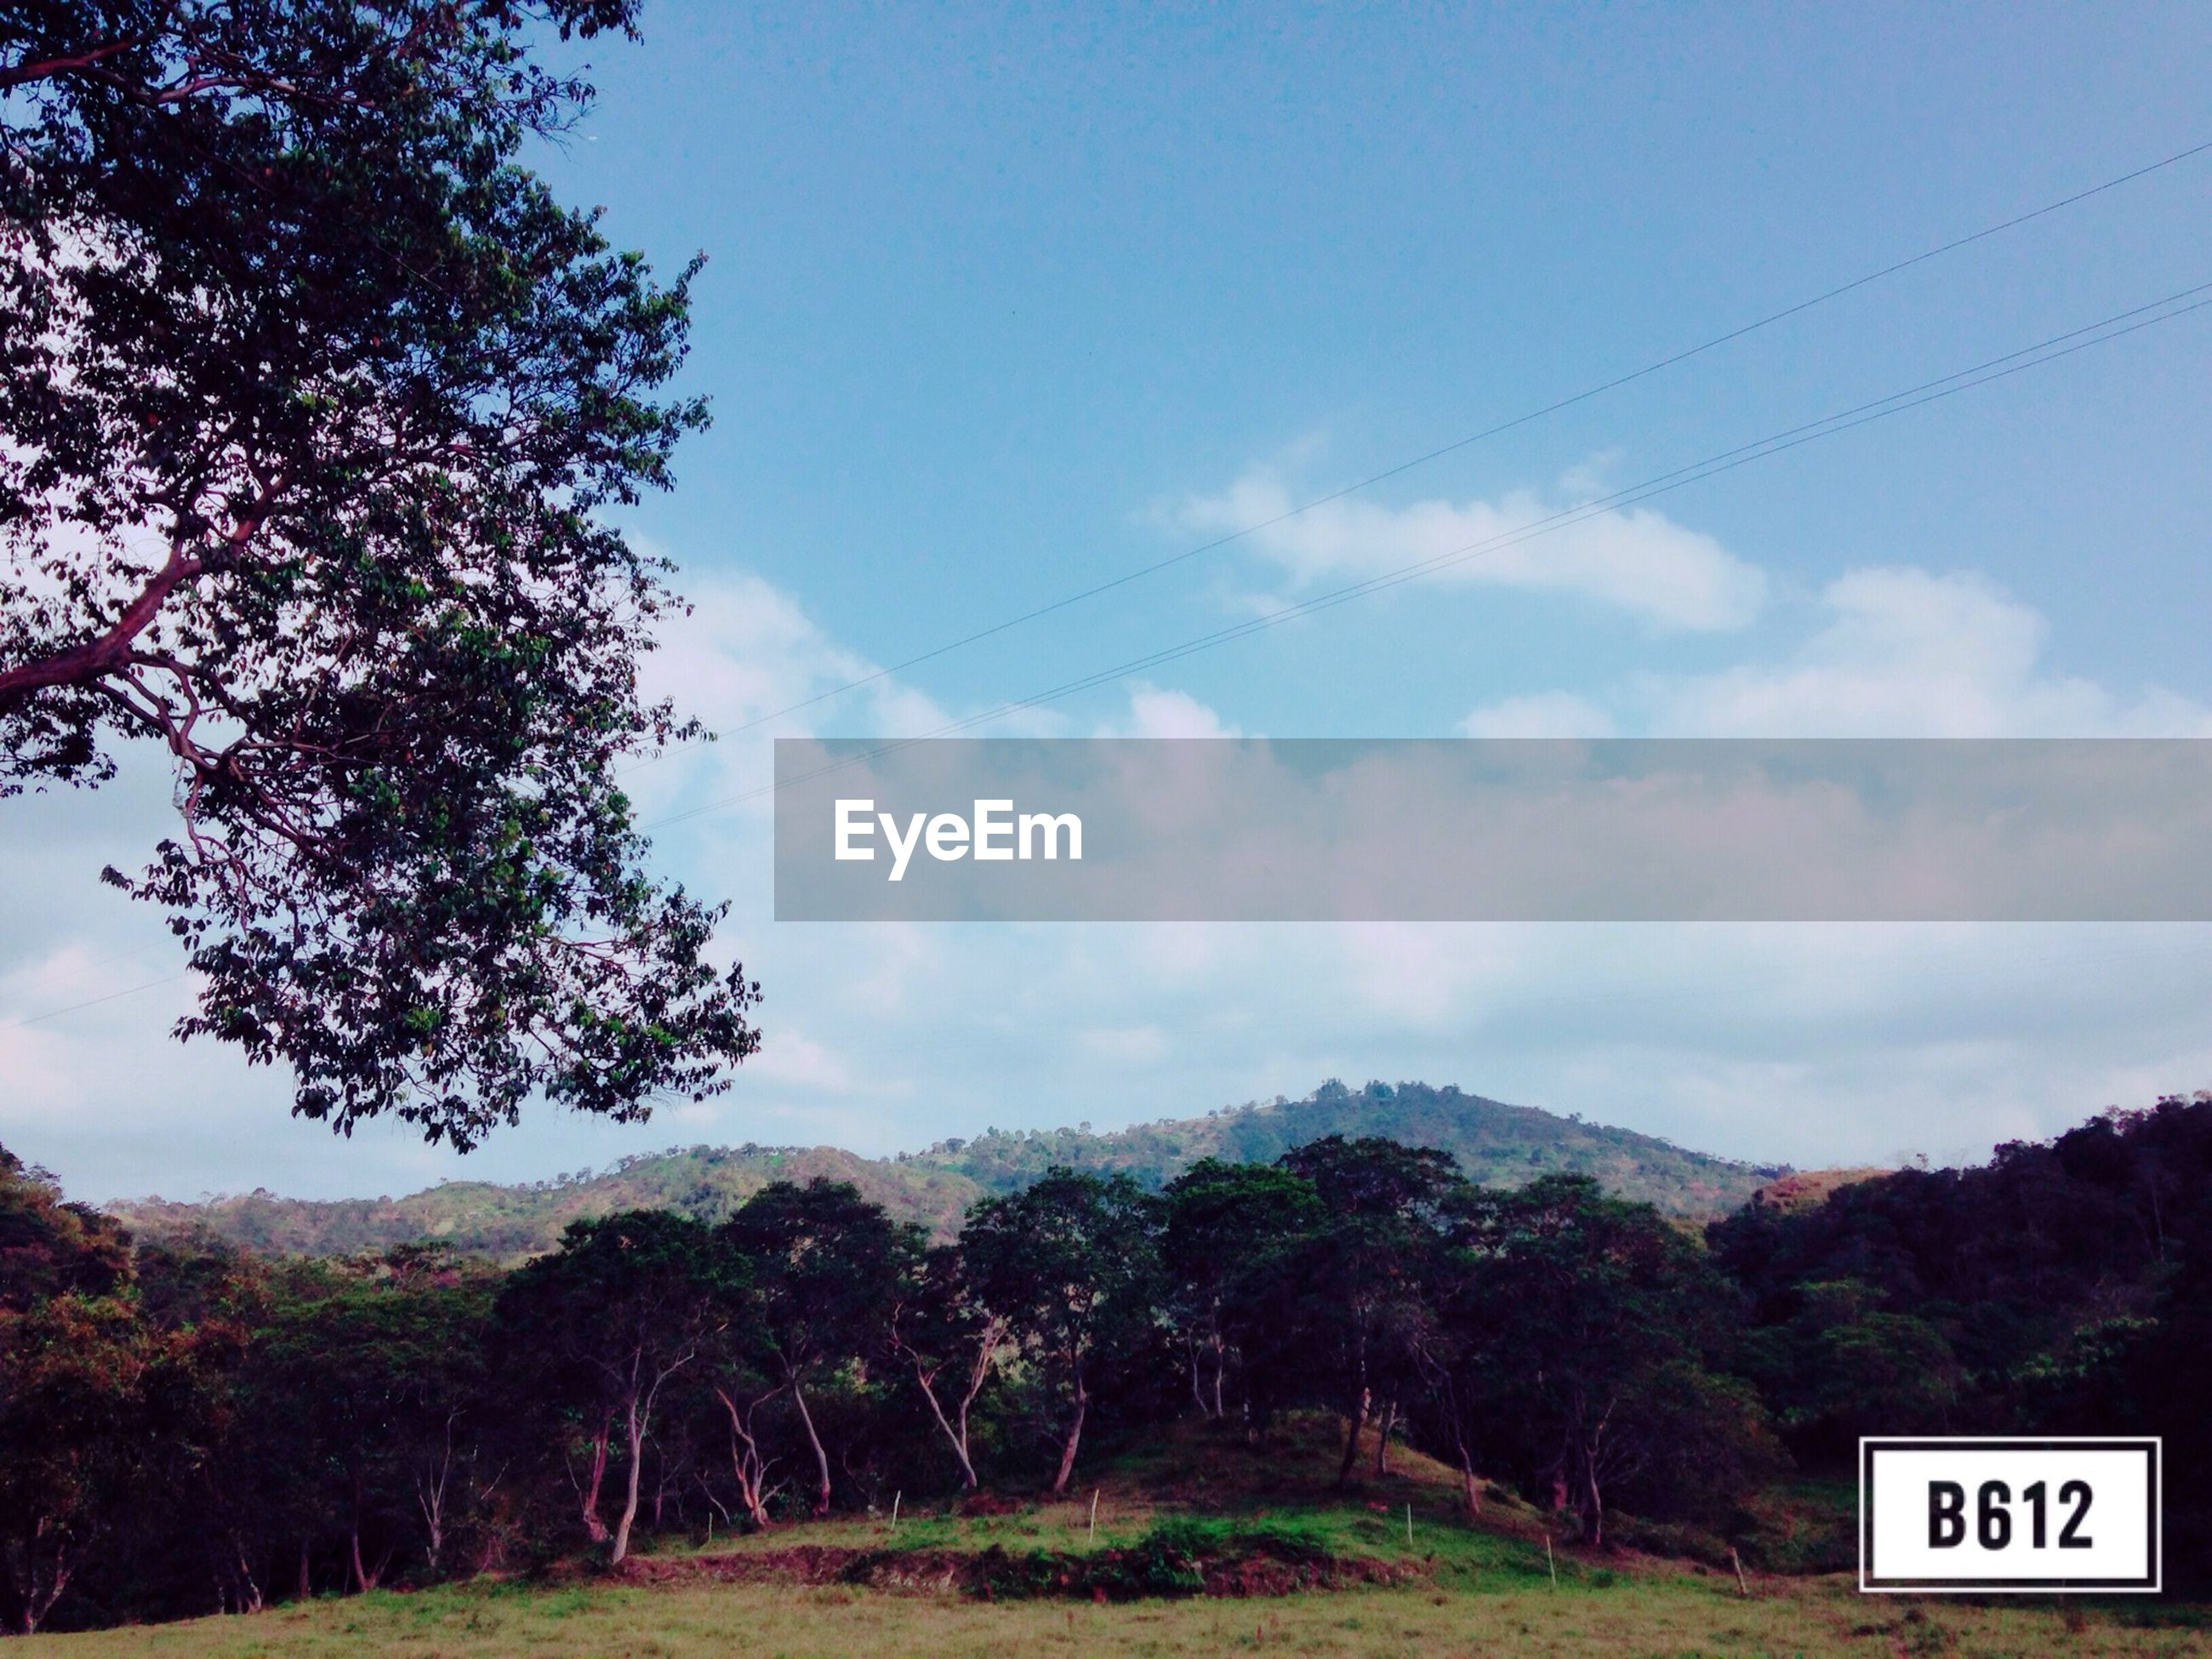 tree, mountain, landscape, tranquil scene, sky, tranquility, scenics, beauty in nature, nature, road, mountain range, non-urban scene, communication, text, road sign, country road, western script, countryside, remote, transportation